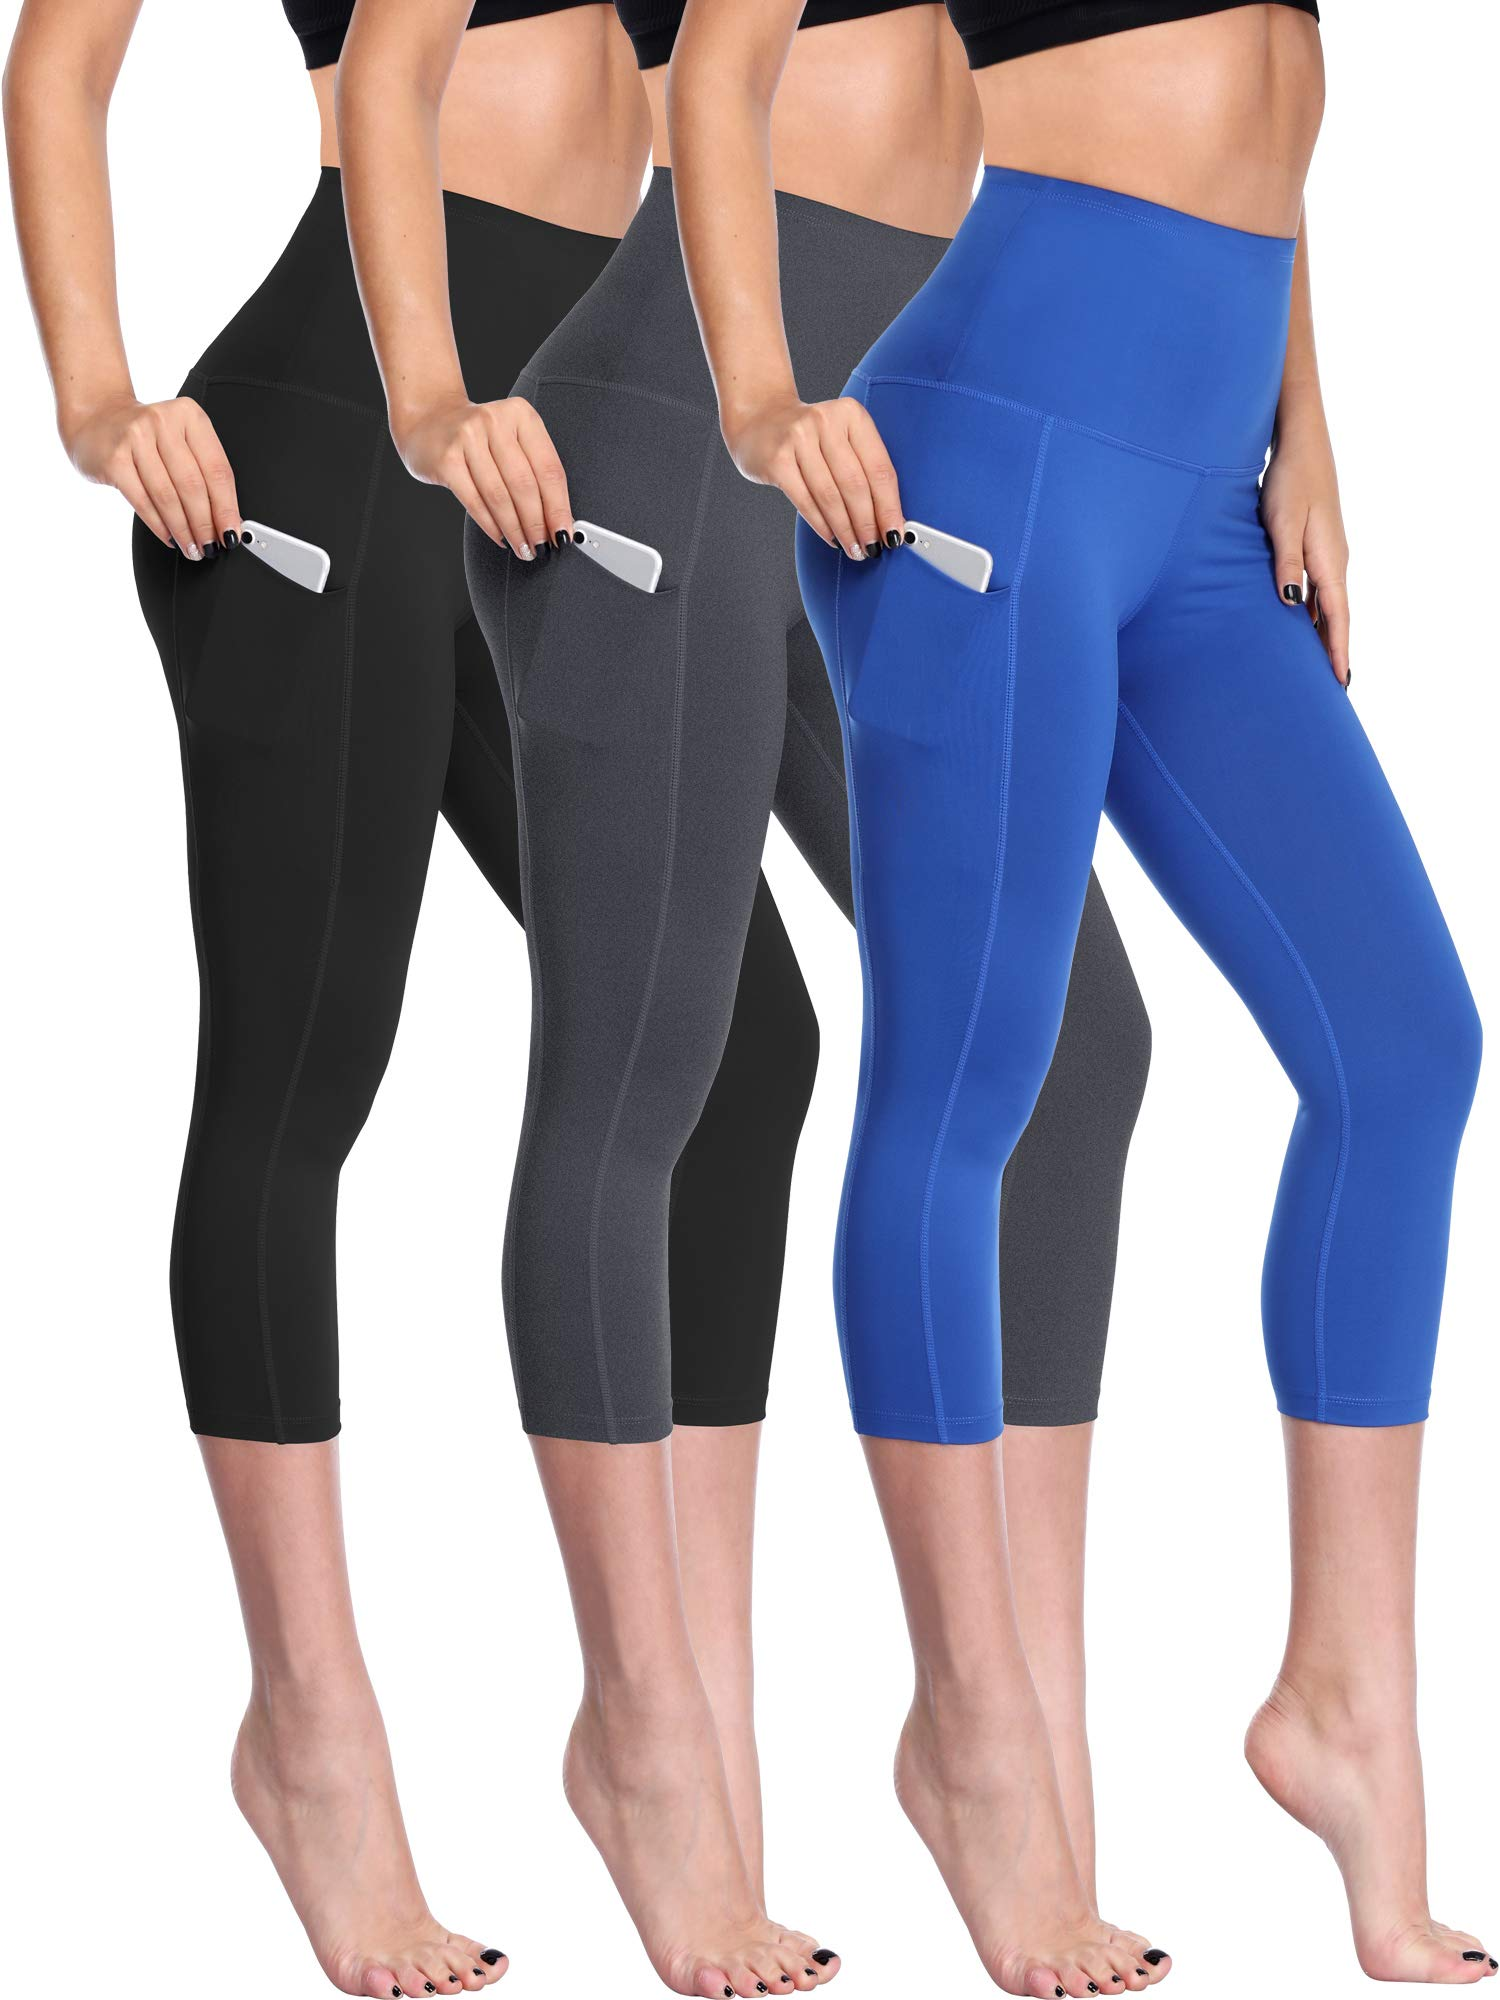 Neleus Women's 3 Pack Tummy Control High Waist Capris Leggings Yoga Pants,109,Black,Grey,Blue,XL by Neleus